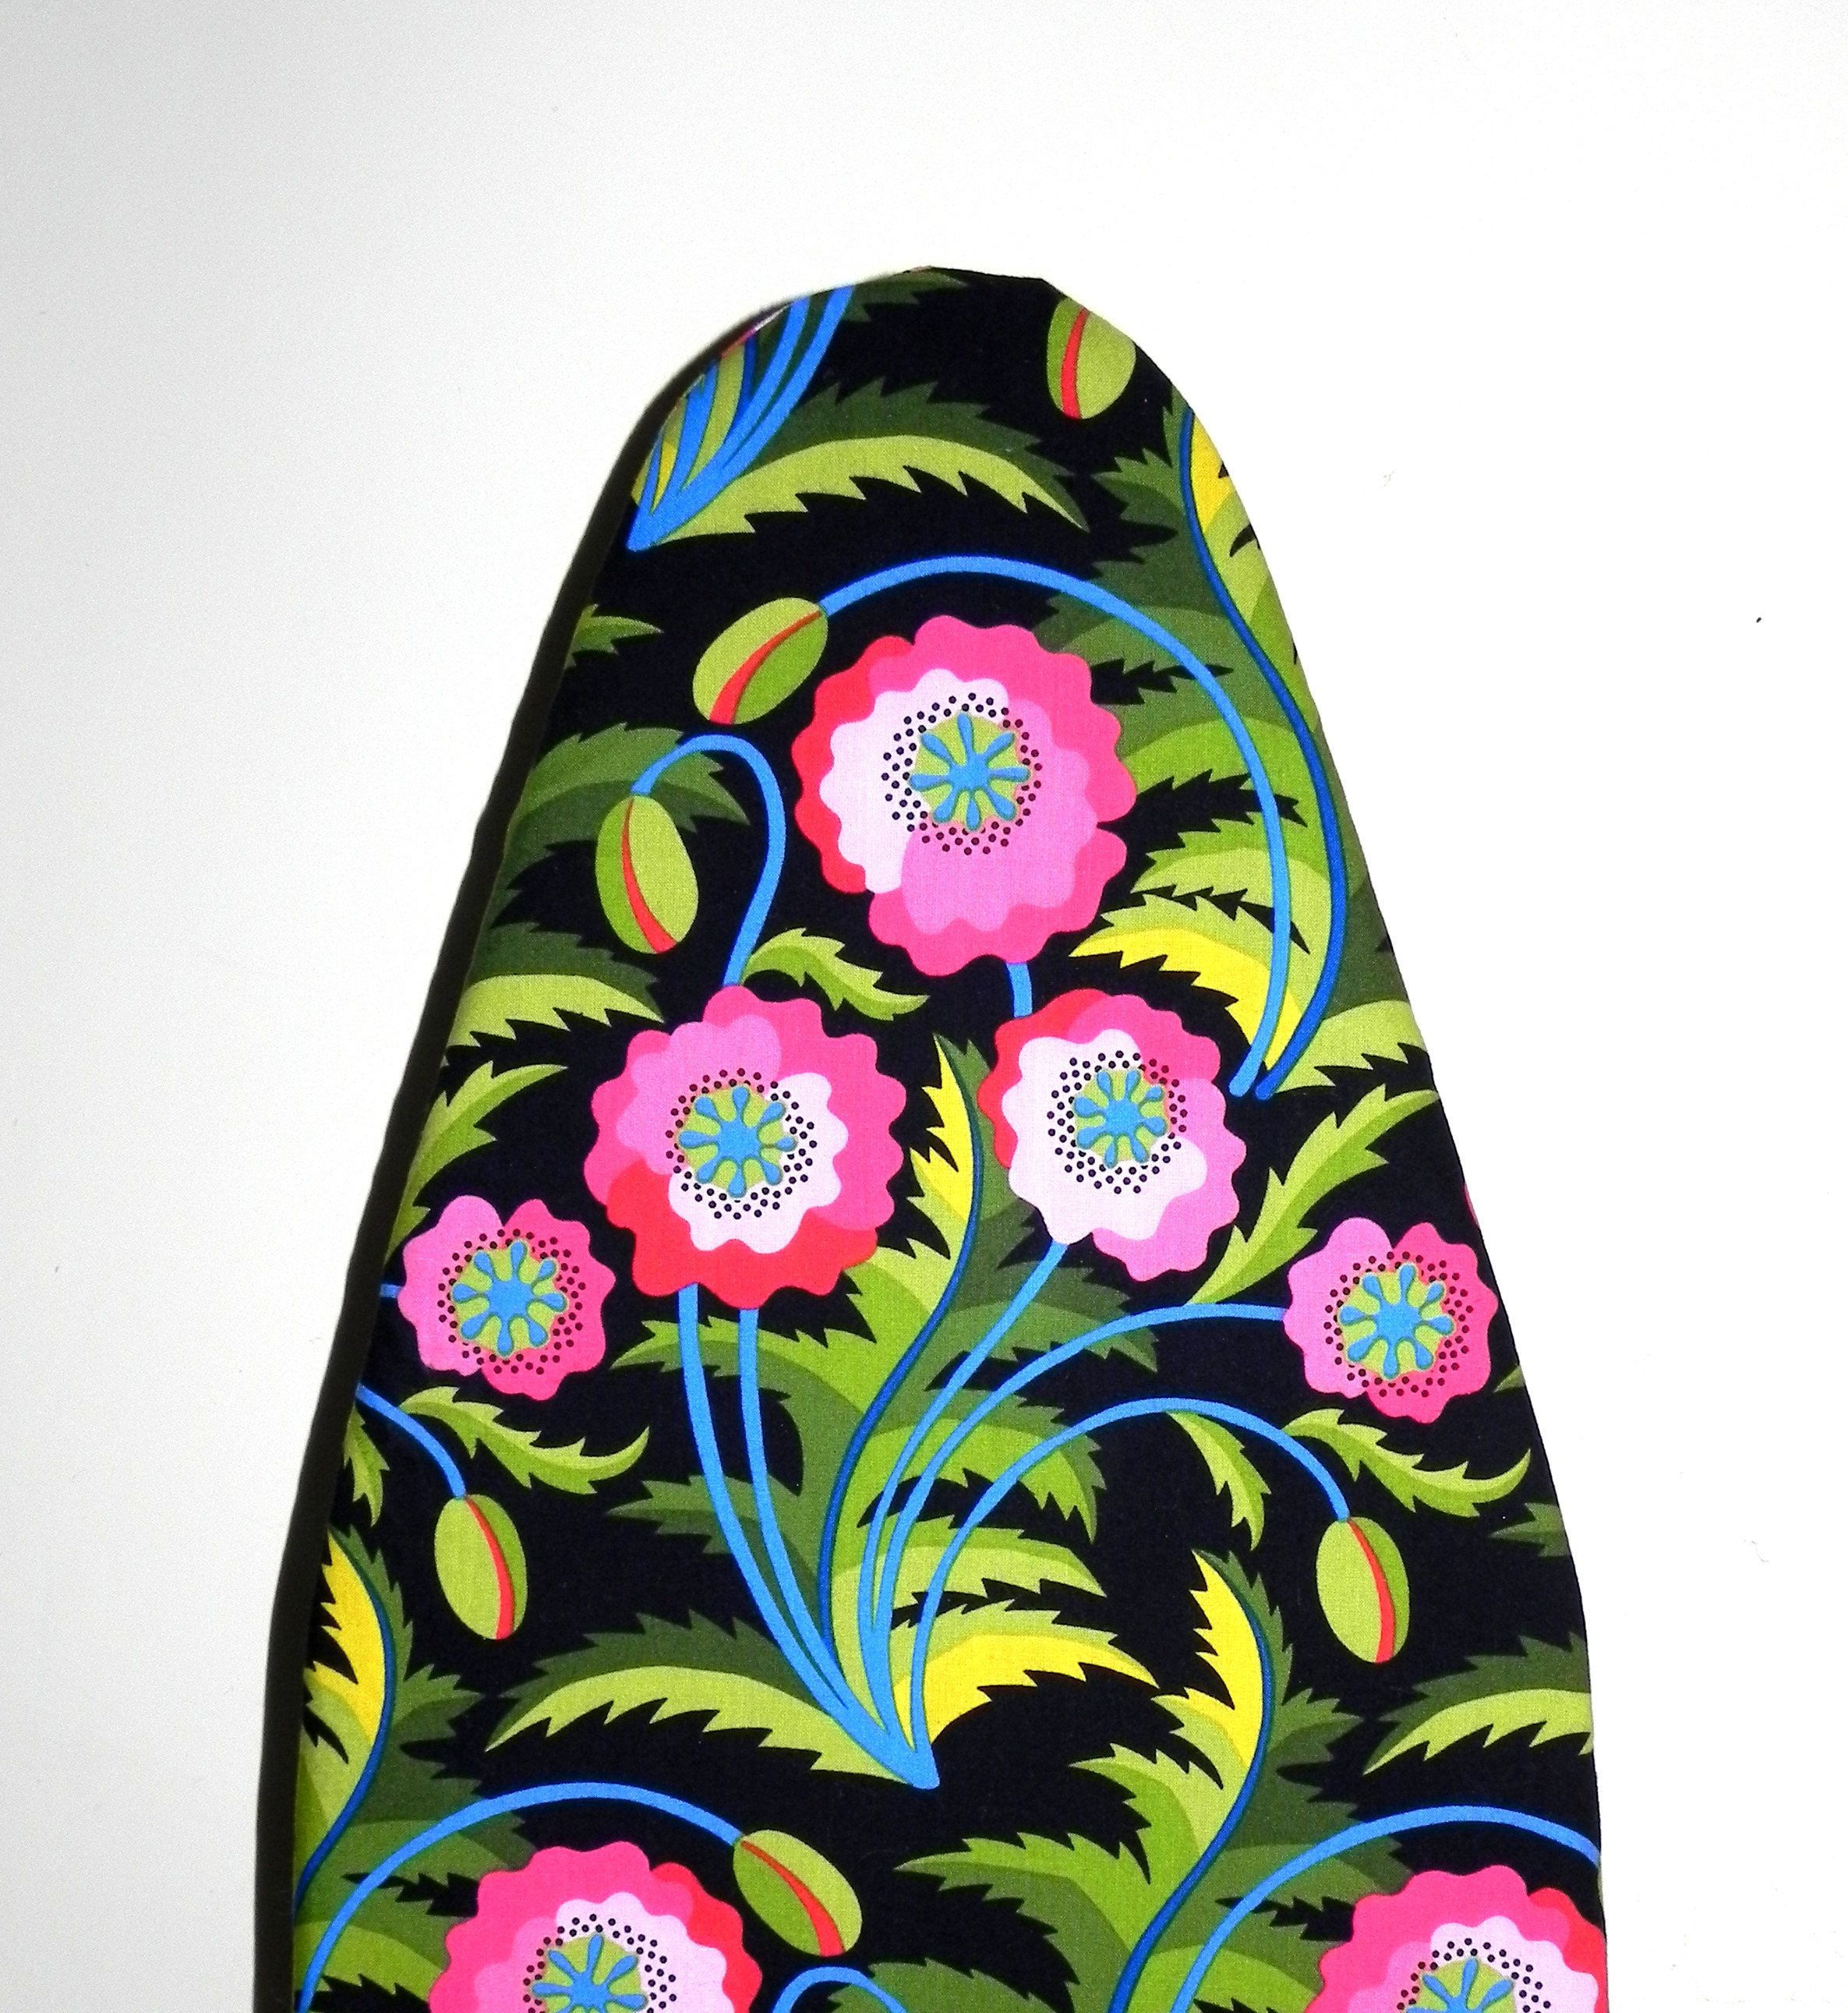 Tabletop Ironing Board Cover   Black, Pink, Blue, Green And Yellow Jane  Sassaman Early Birds Fabric